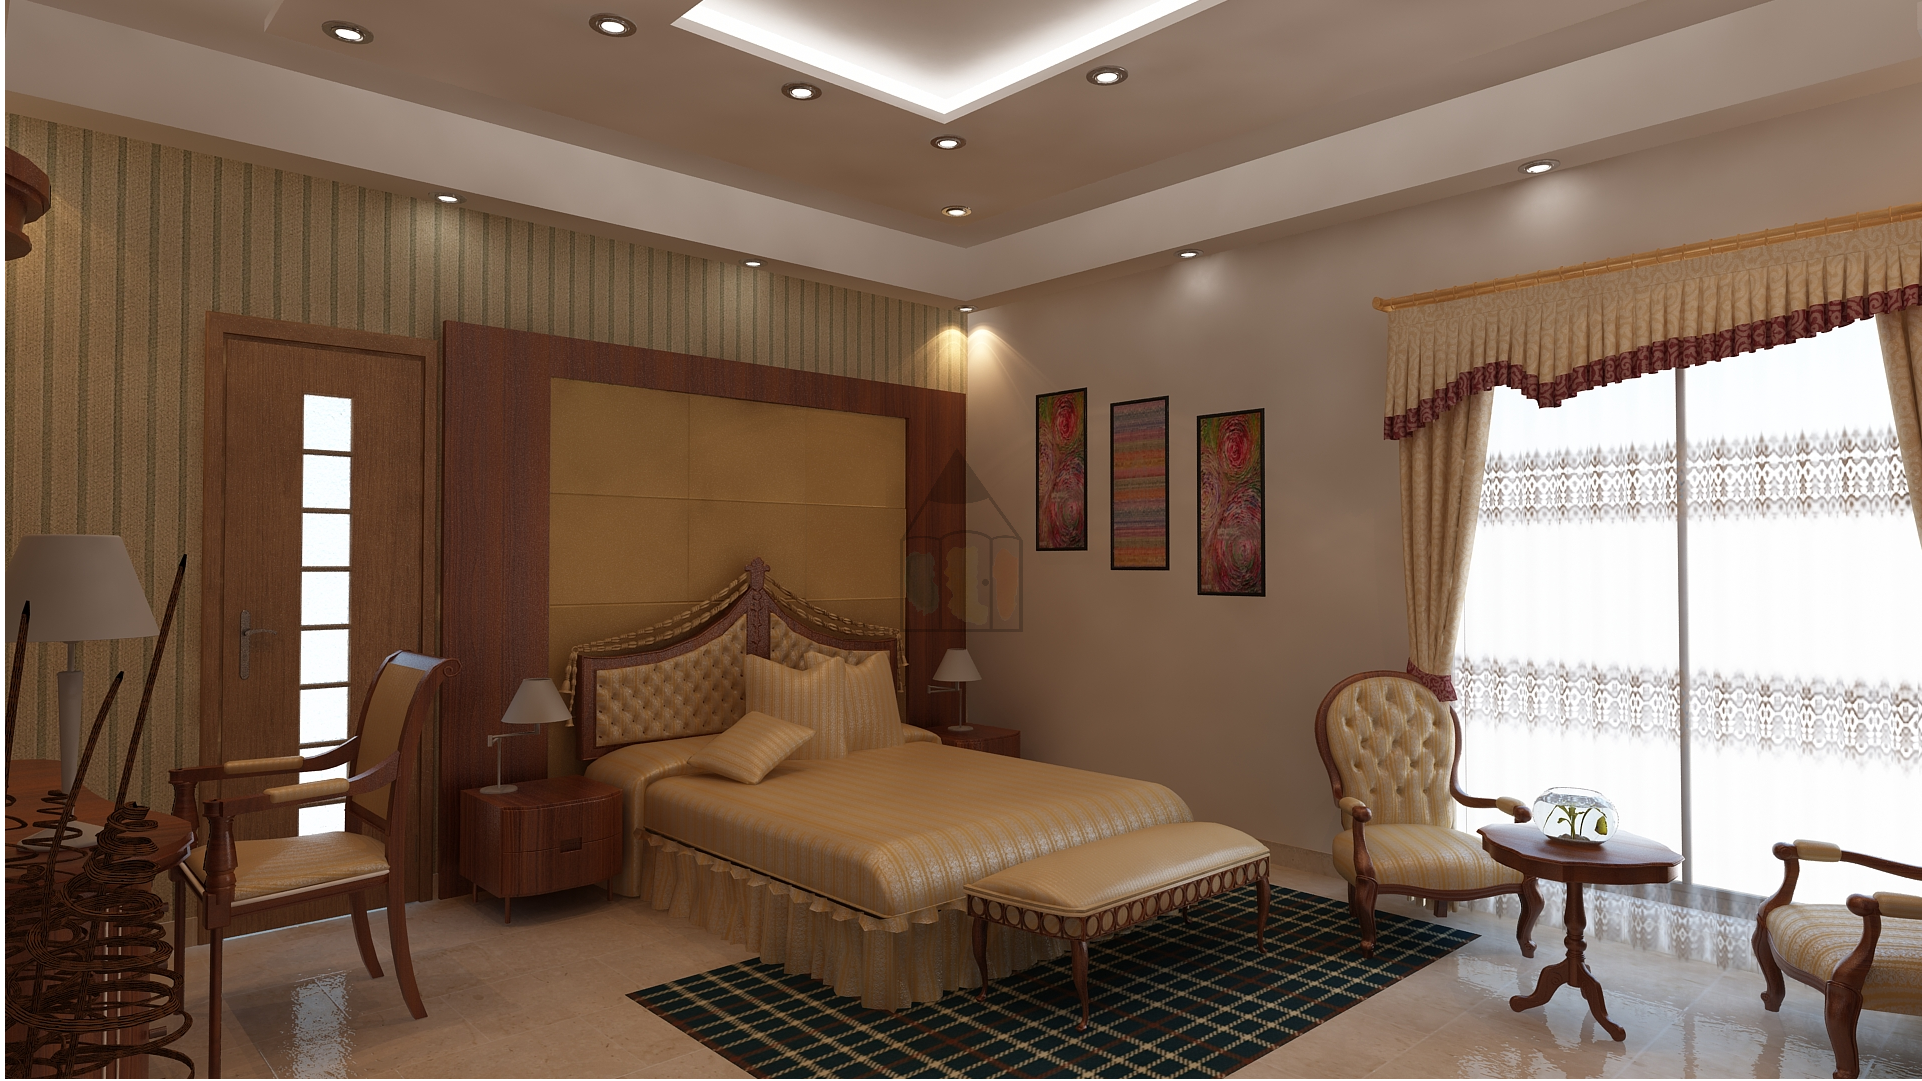 Pakistani bedroom design. In Pakistan, clients prefer their